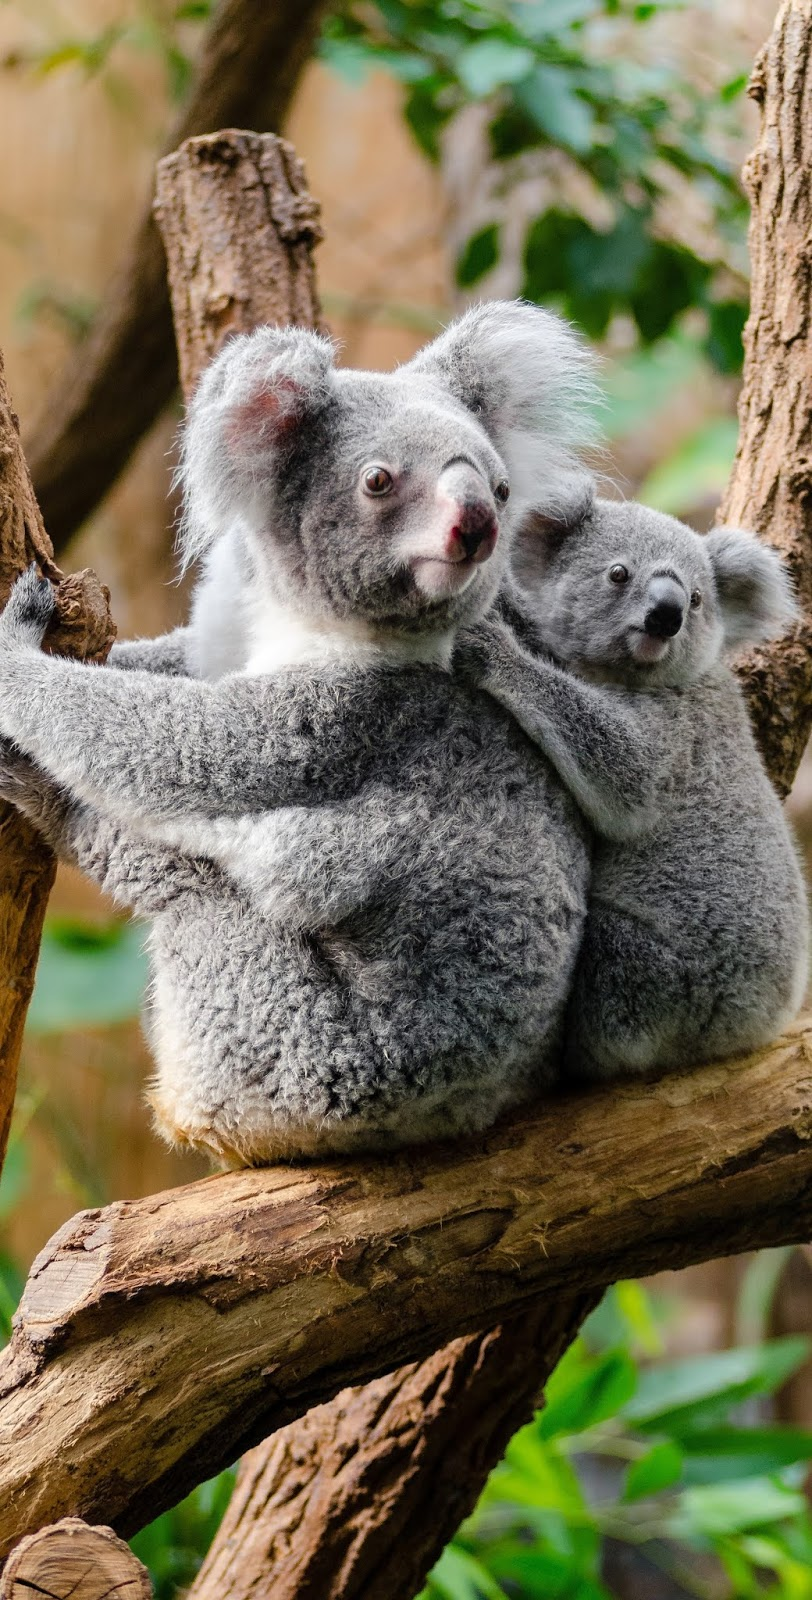 A cute koala baby holding on to her mother.